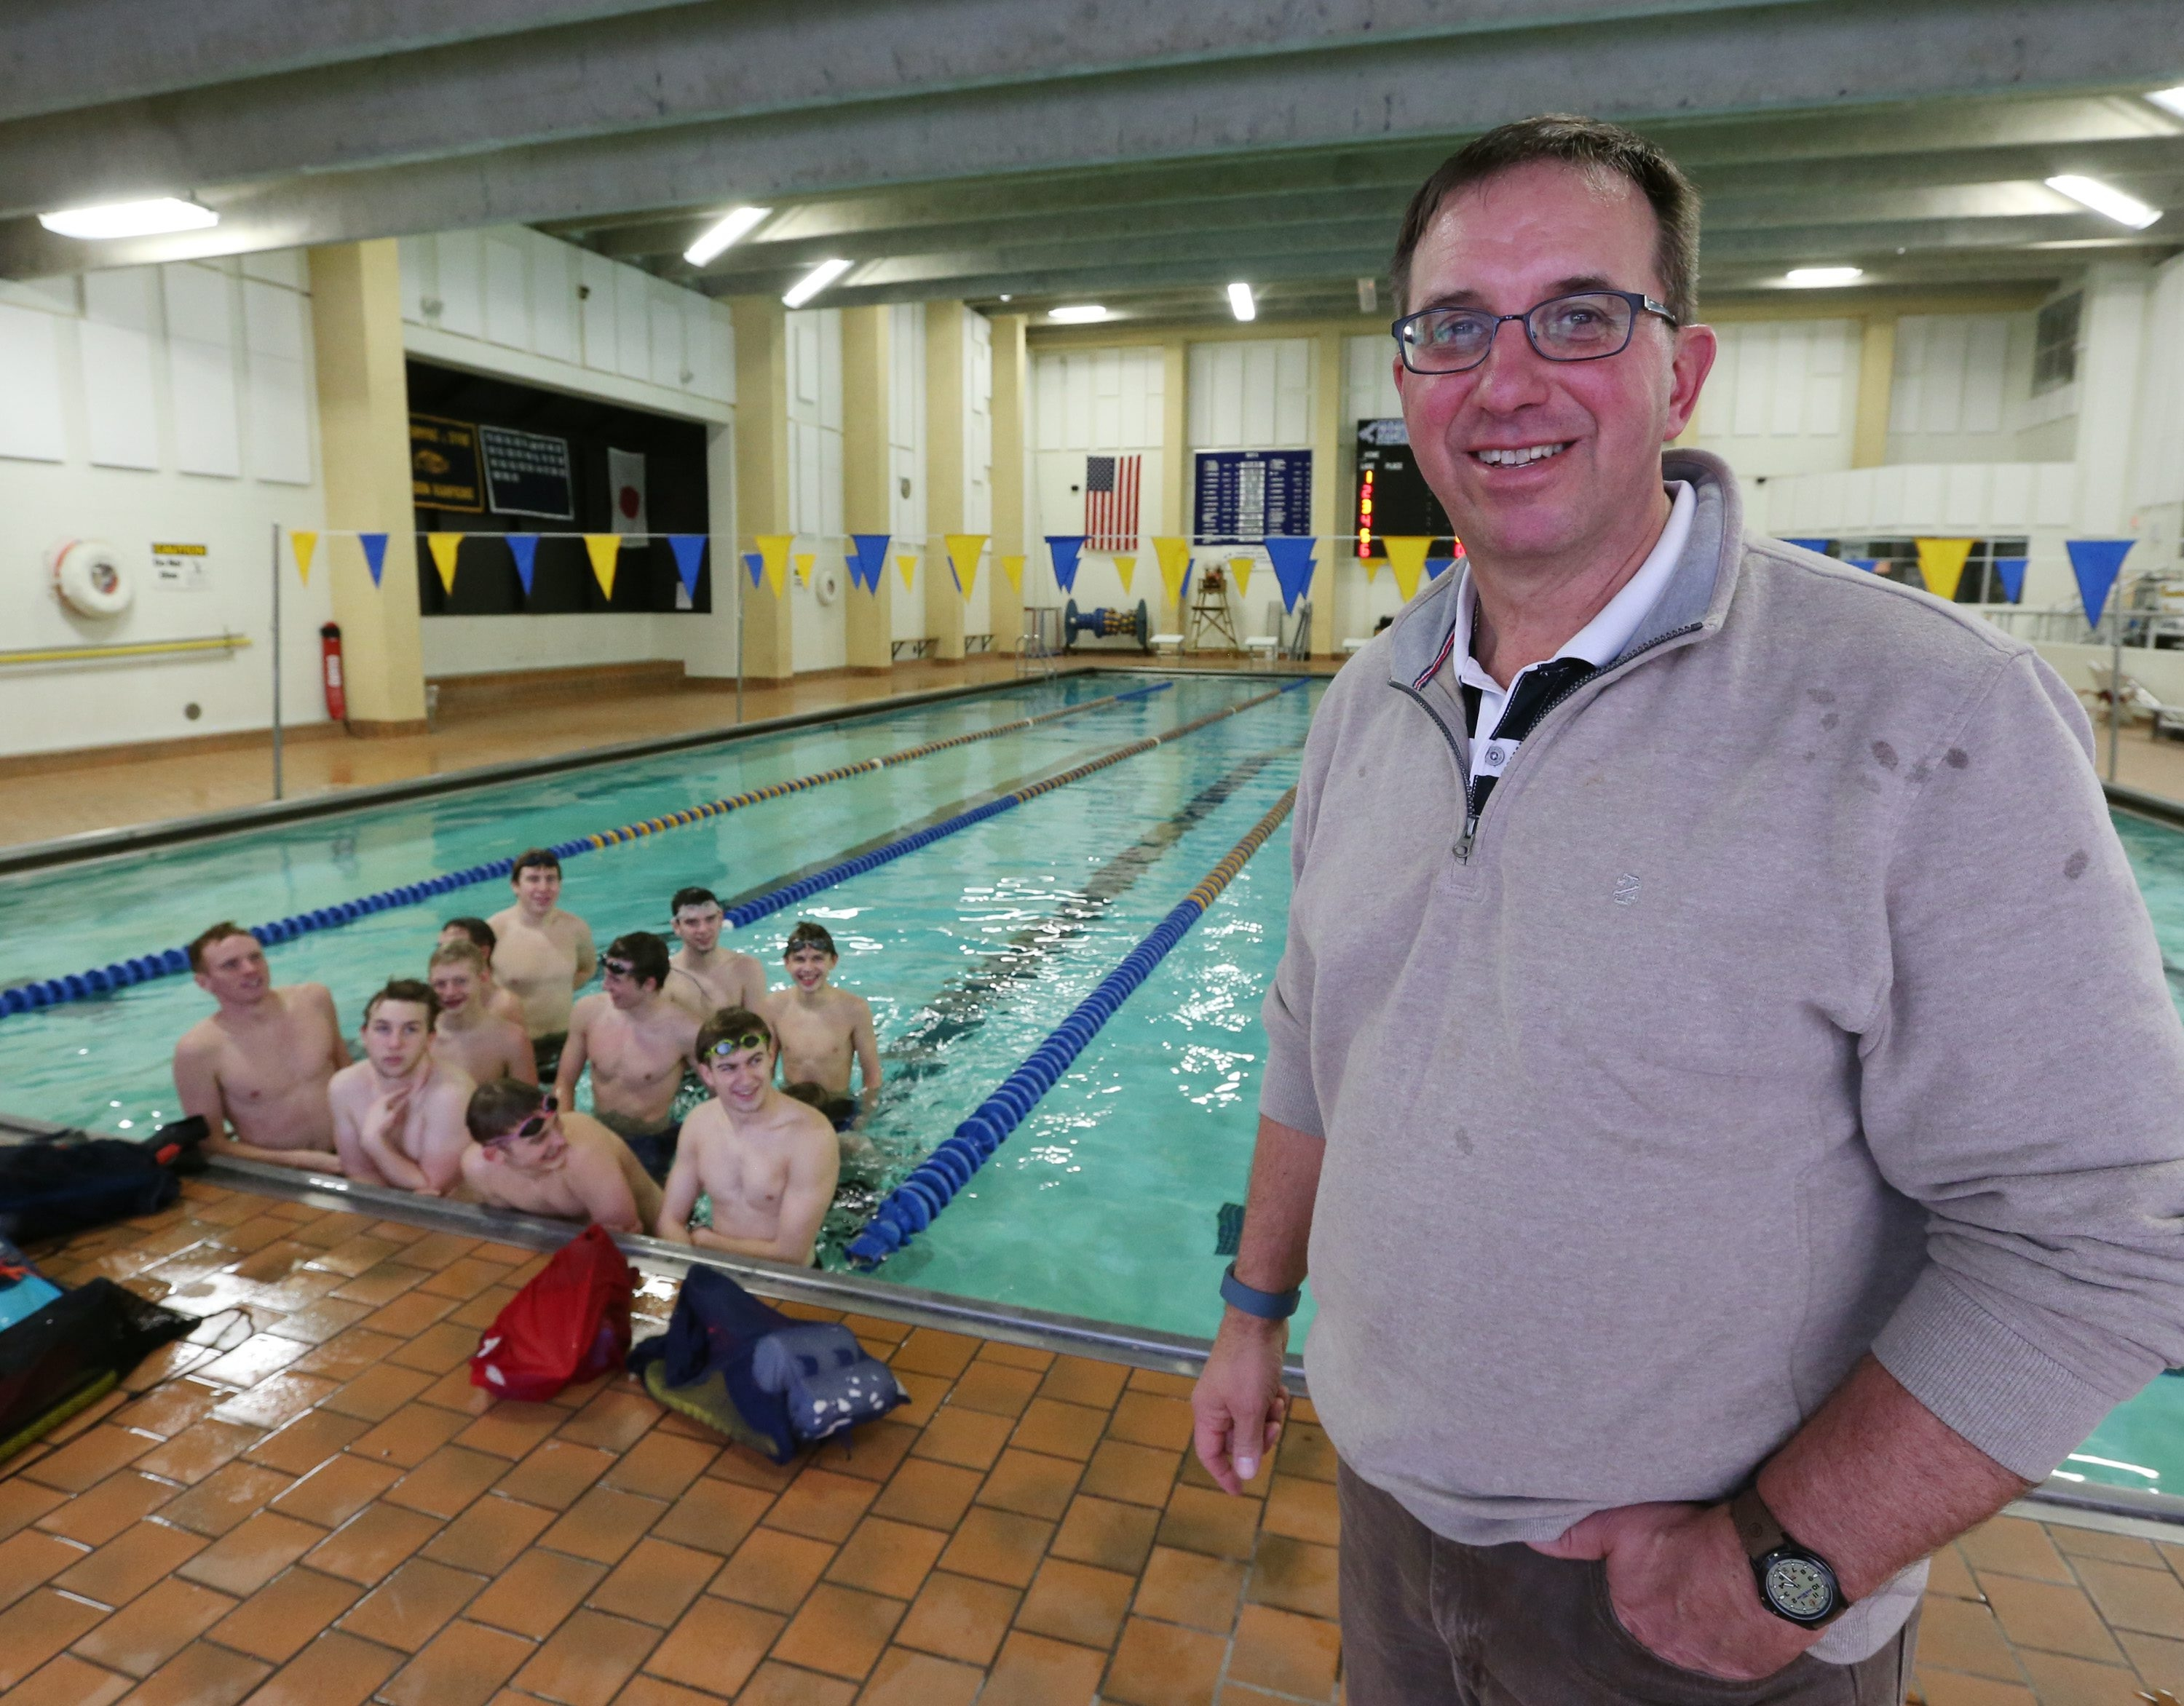 Bruce Johnson means so much to swimming in Frewsburg that it's been suggested the high school pool where he's coached for 39 years be named in his honor.